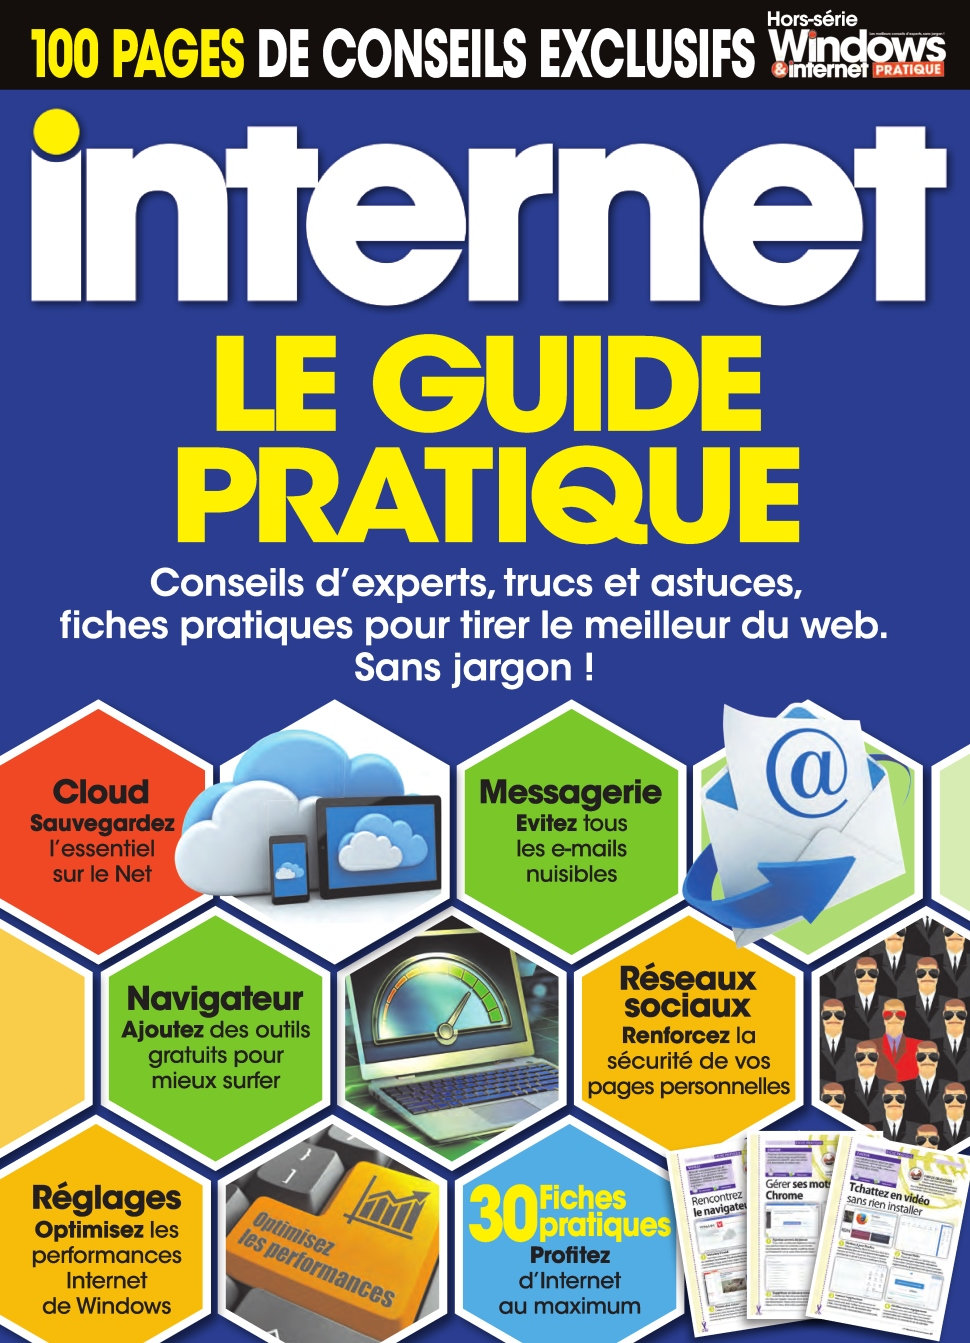 Windows & Internet Pratique Hors-Série No.8 - Été 2015